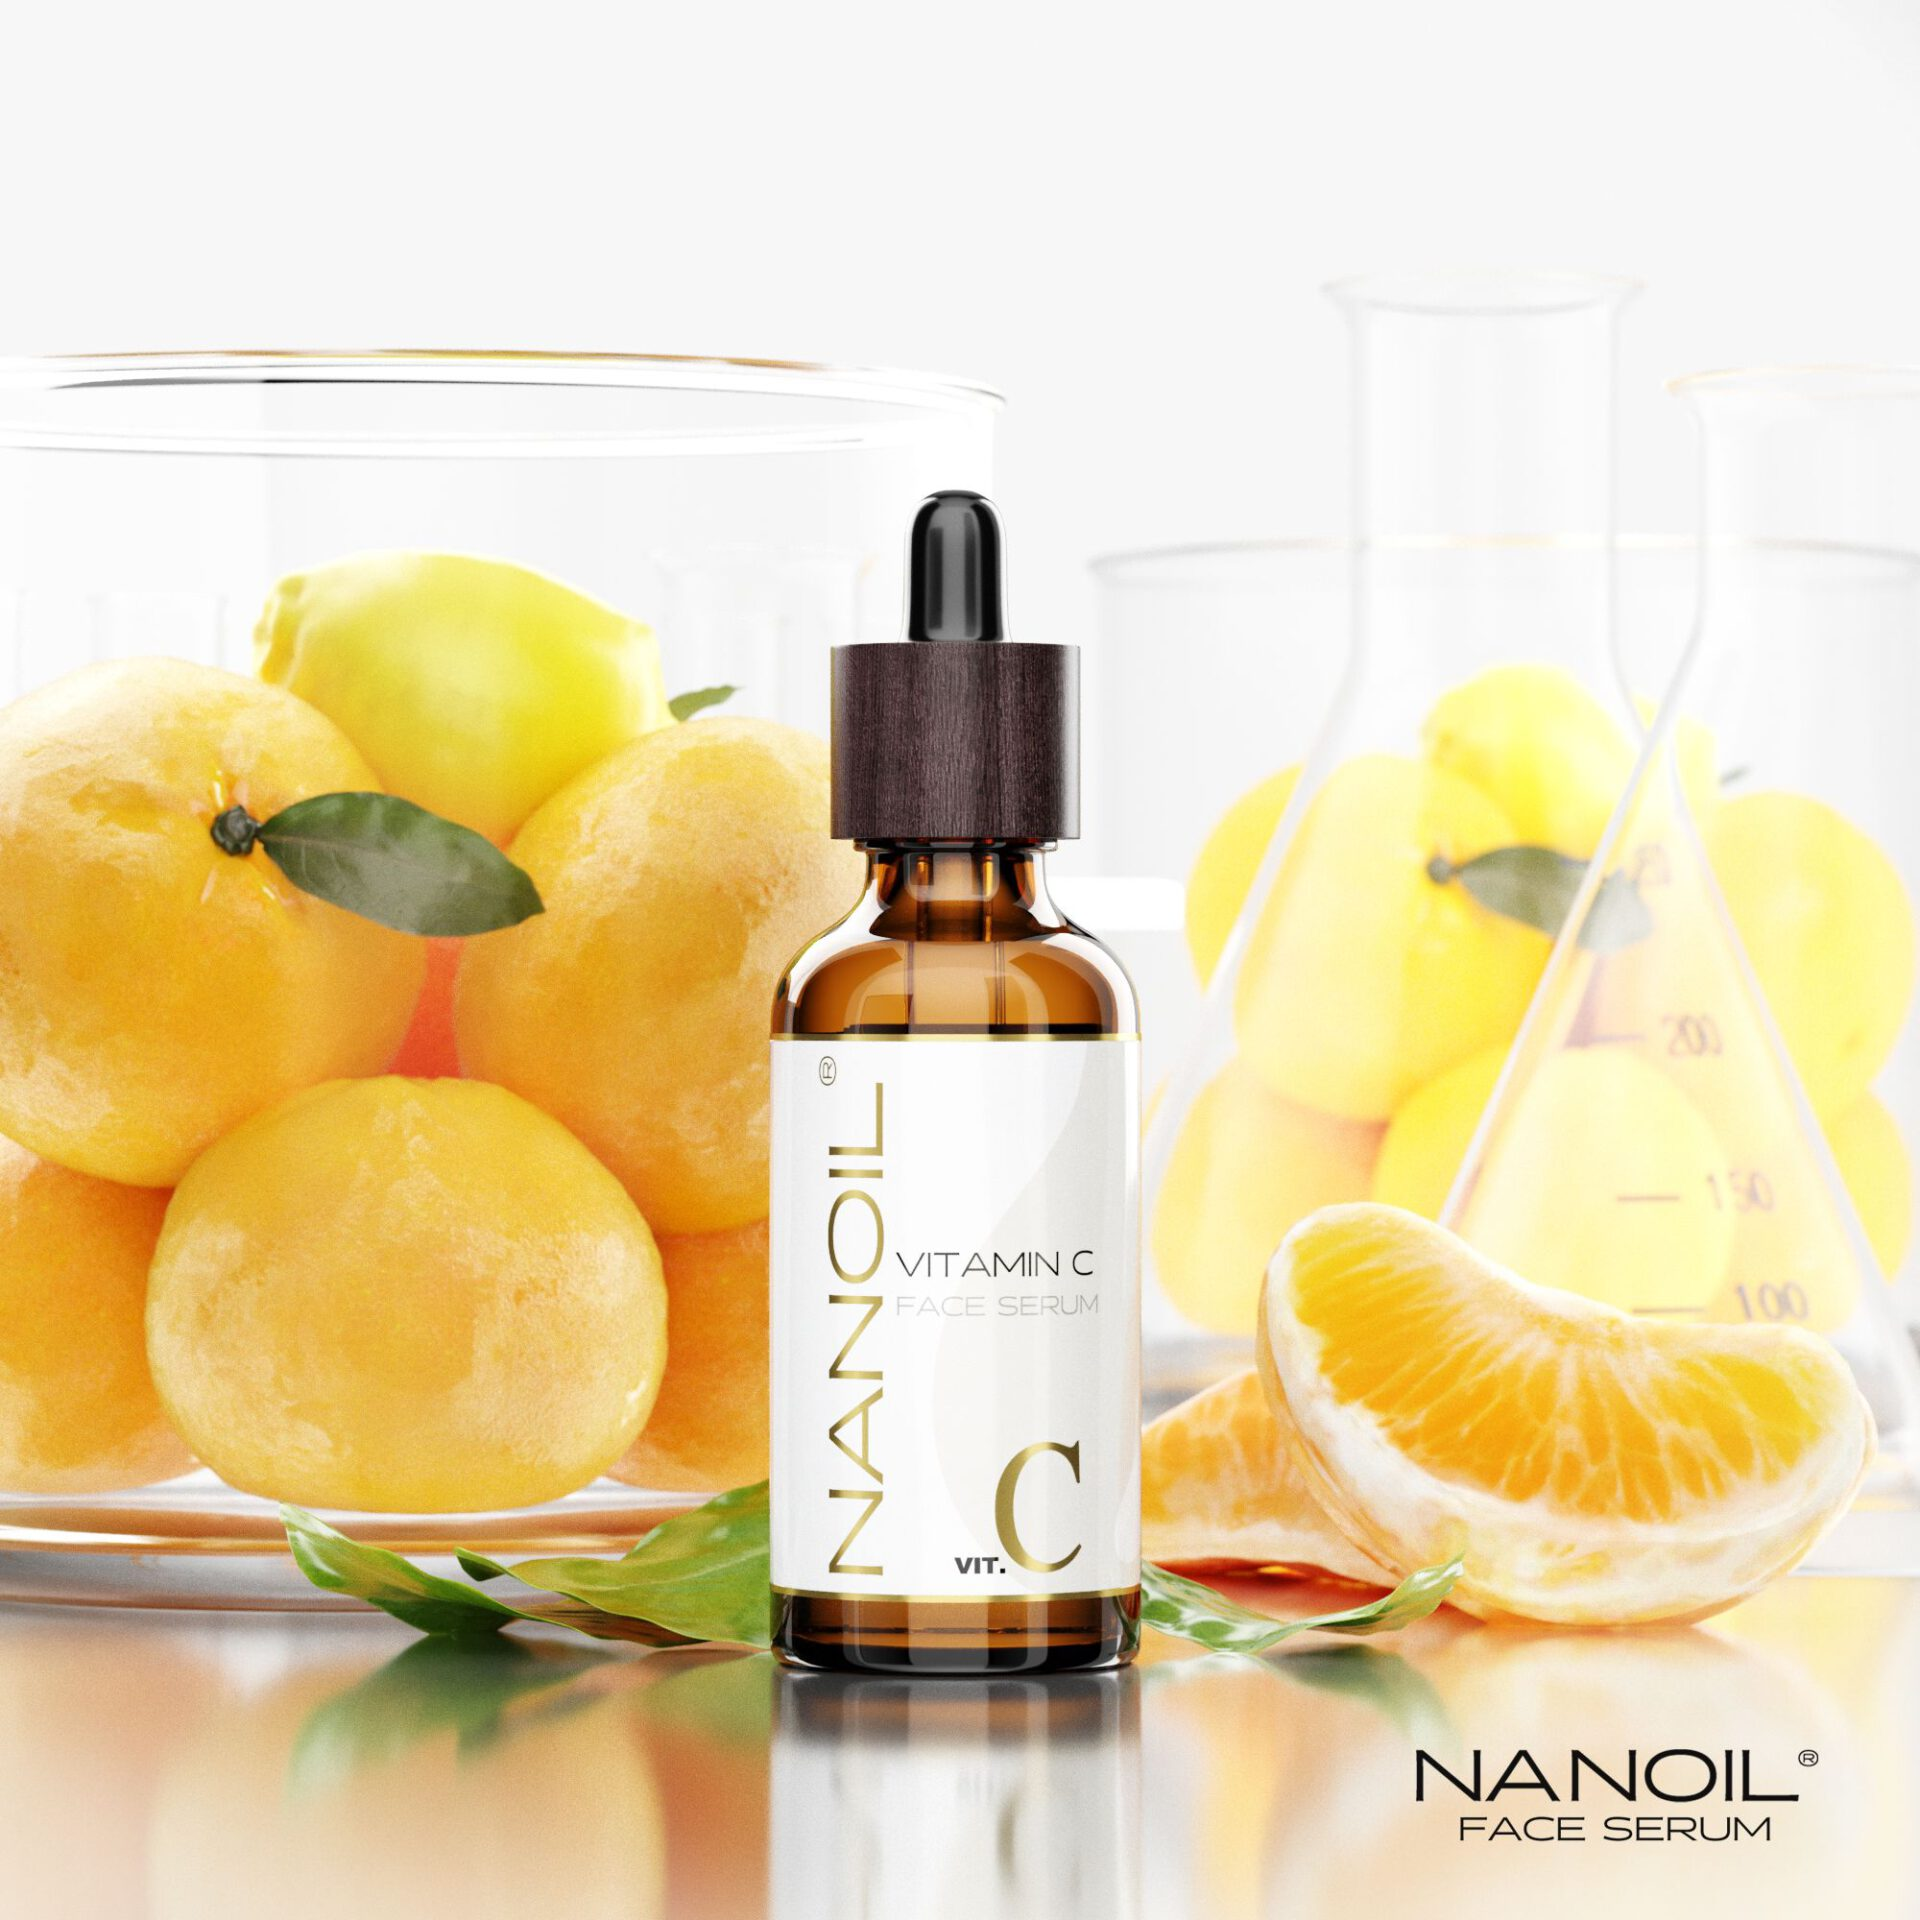 Top-rated product on my blog: Nanoil Vitamin C Face Serum